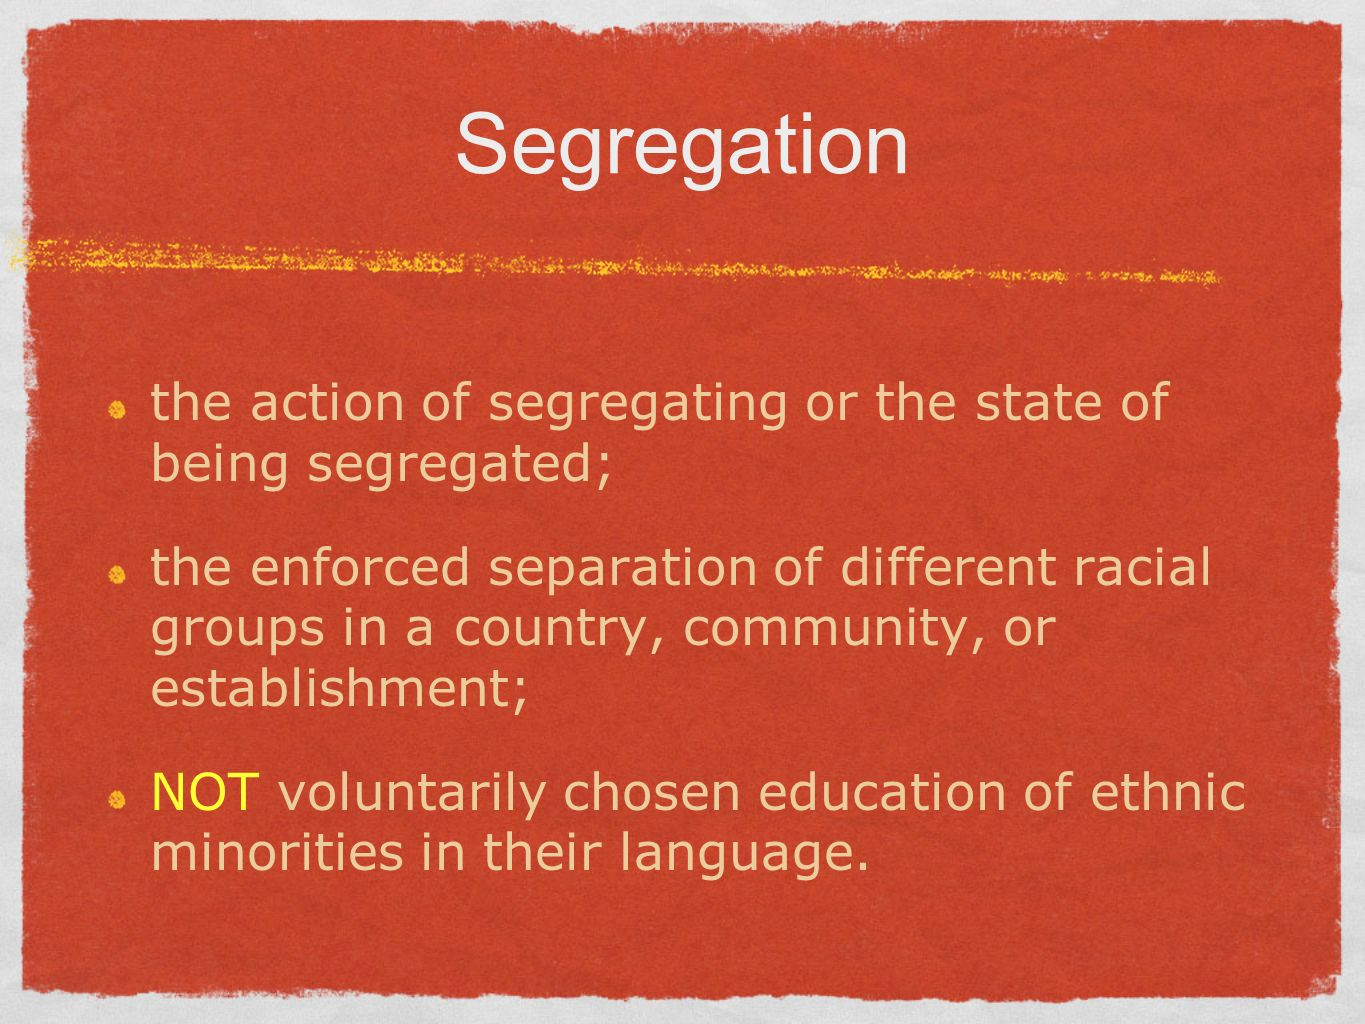 Segregation the action of segregating or the state of being segregated; the enforced separation of different racial groups in a country, community, or establishment; NOT voluntarily chosen education of ethnic minorities in their language.